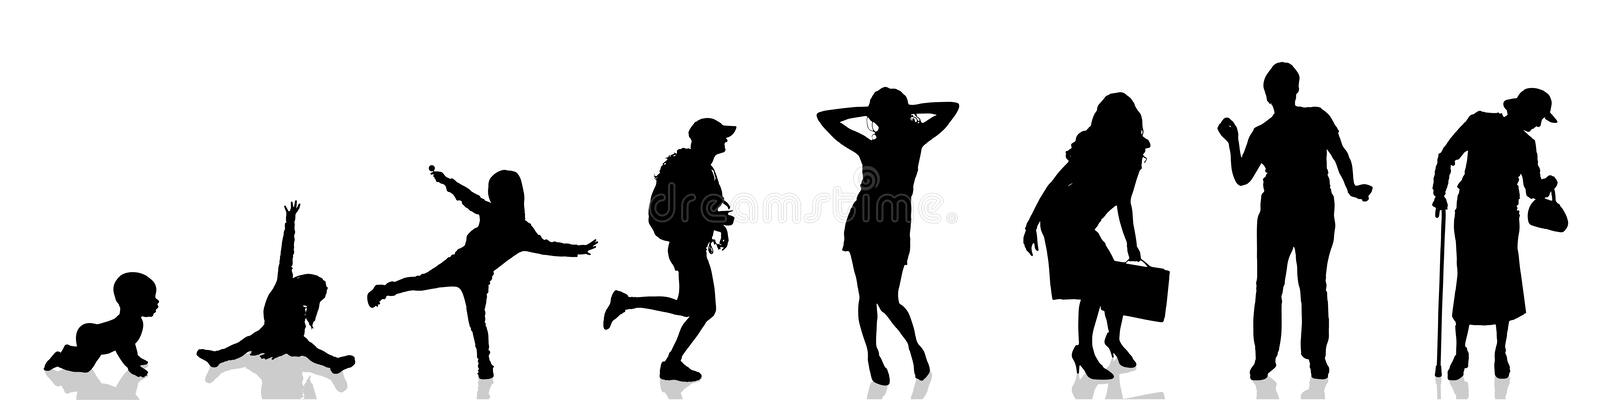 Vector silhouette of woman. vector illustration